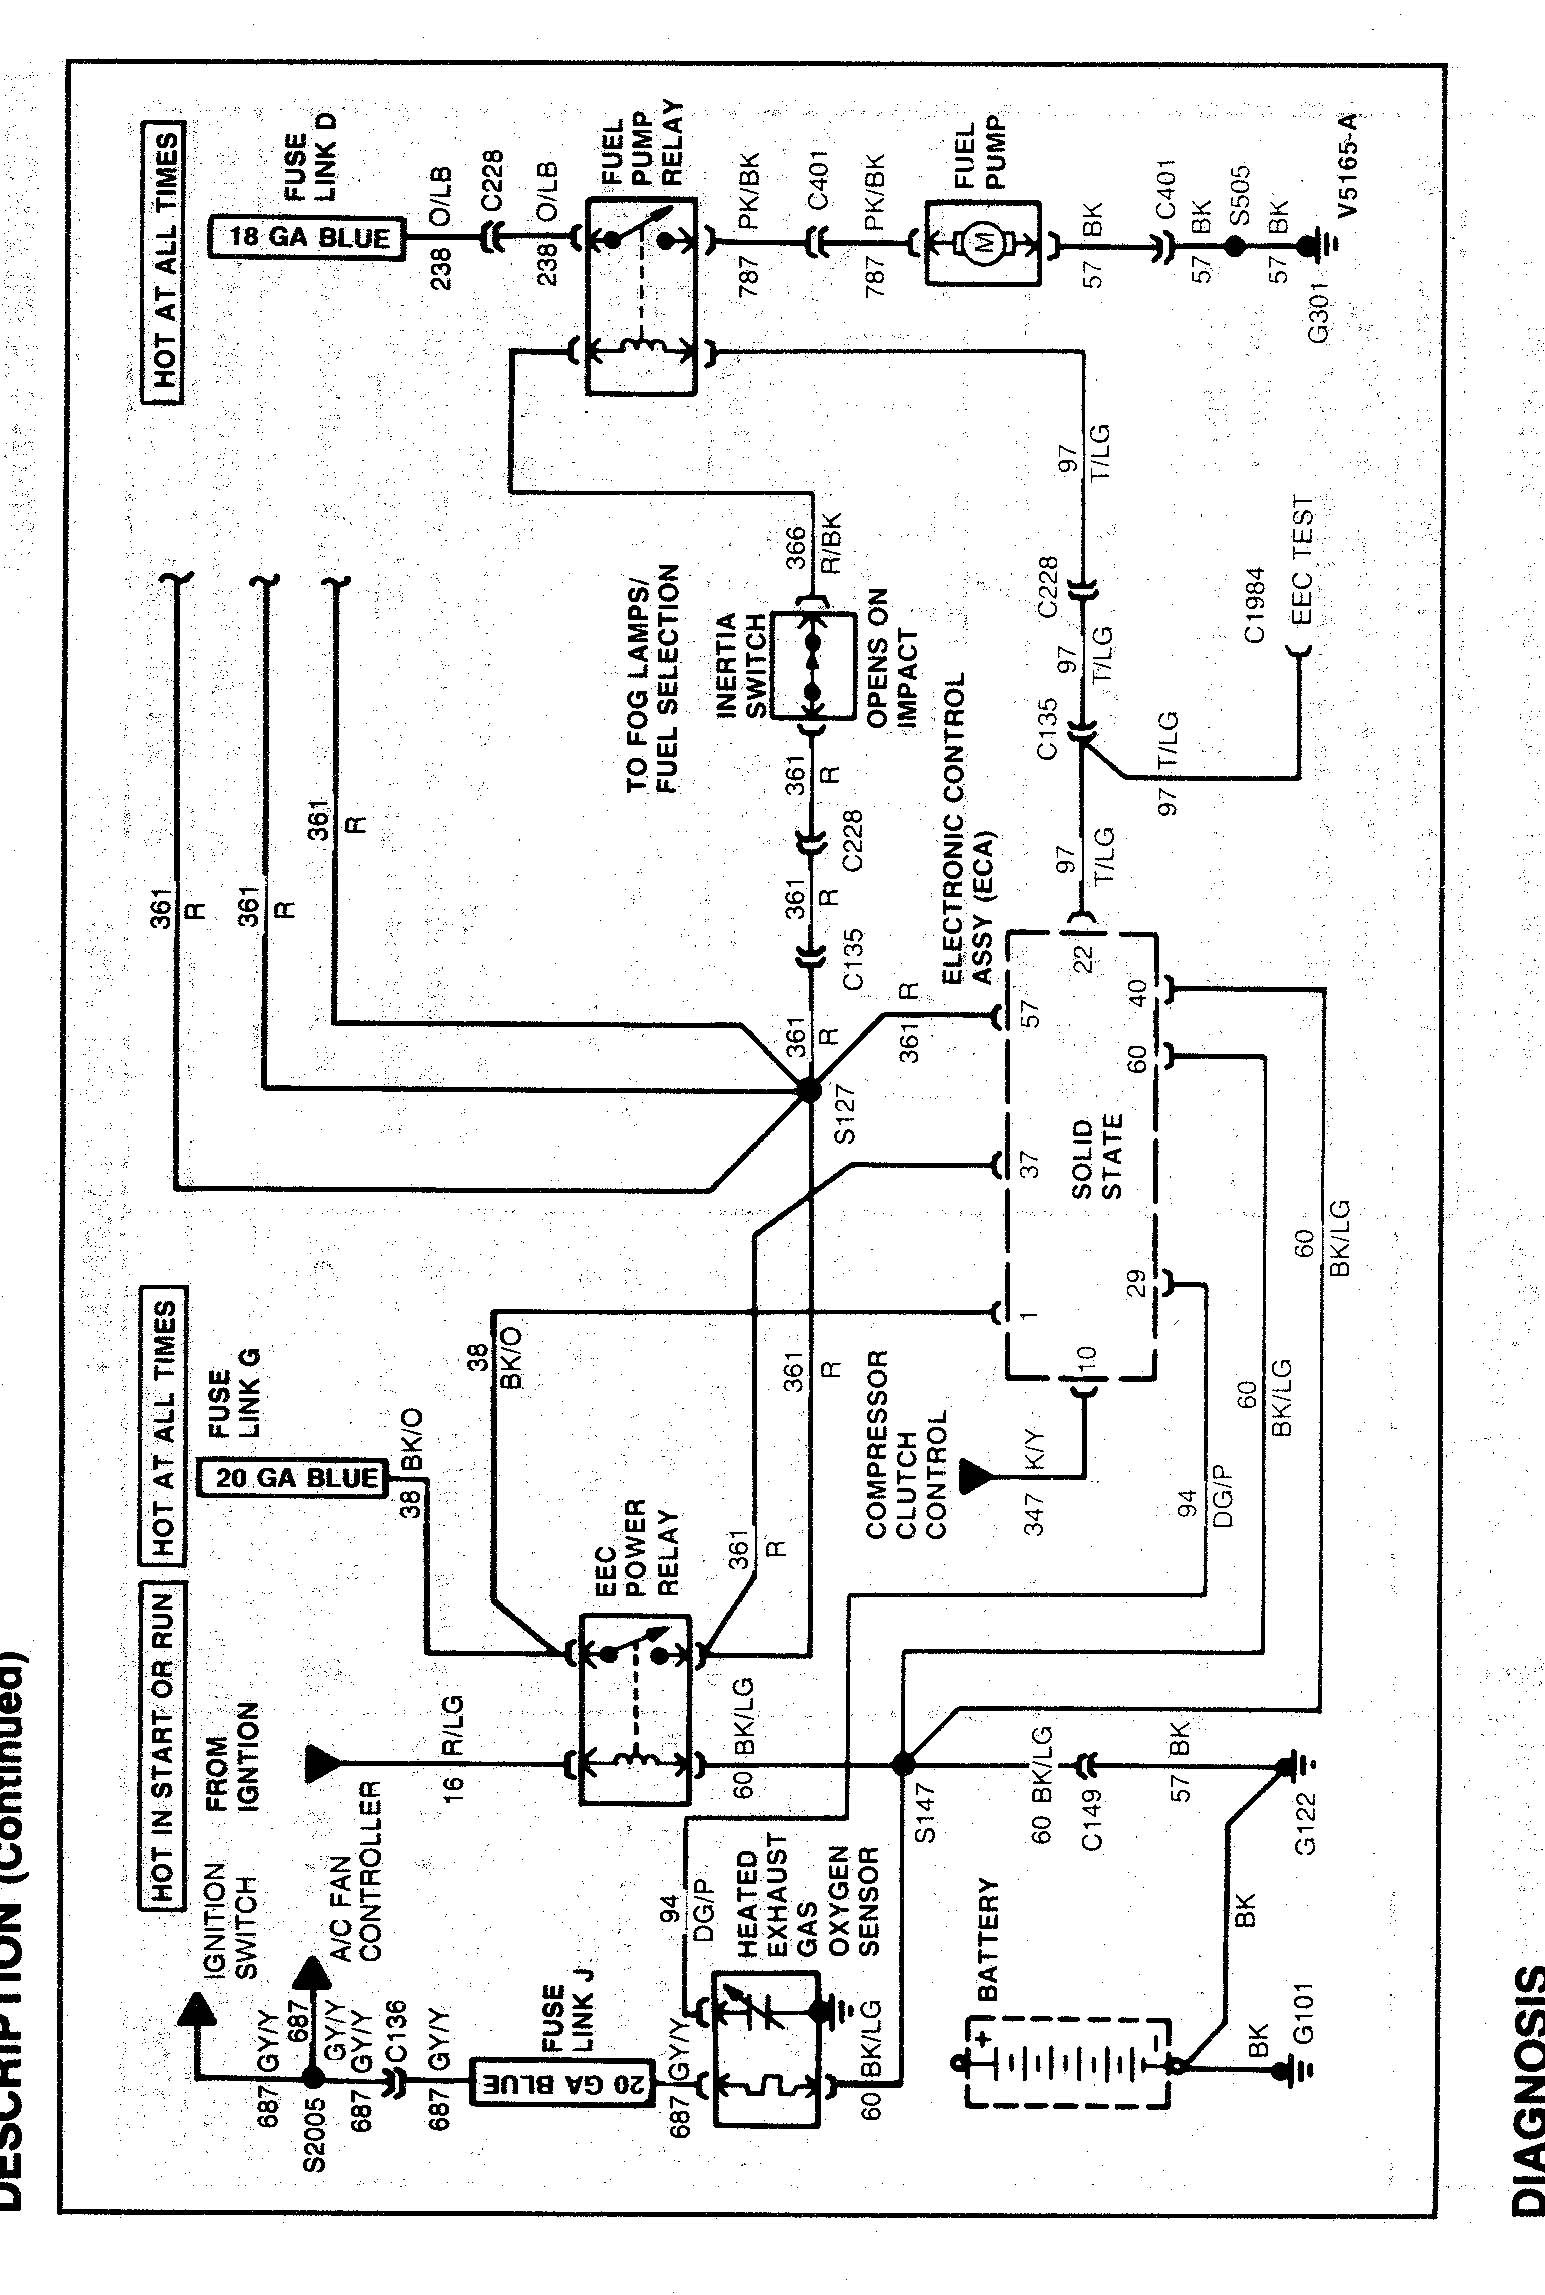 wiring diagram for 2006 ford mustang